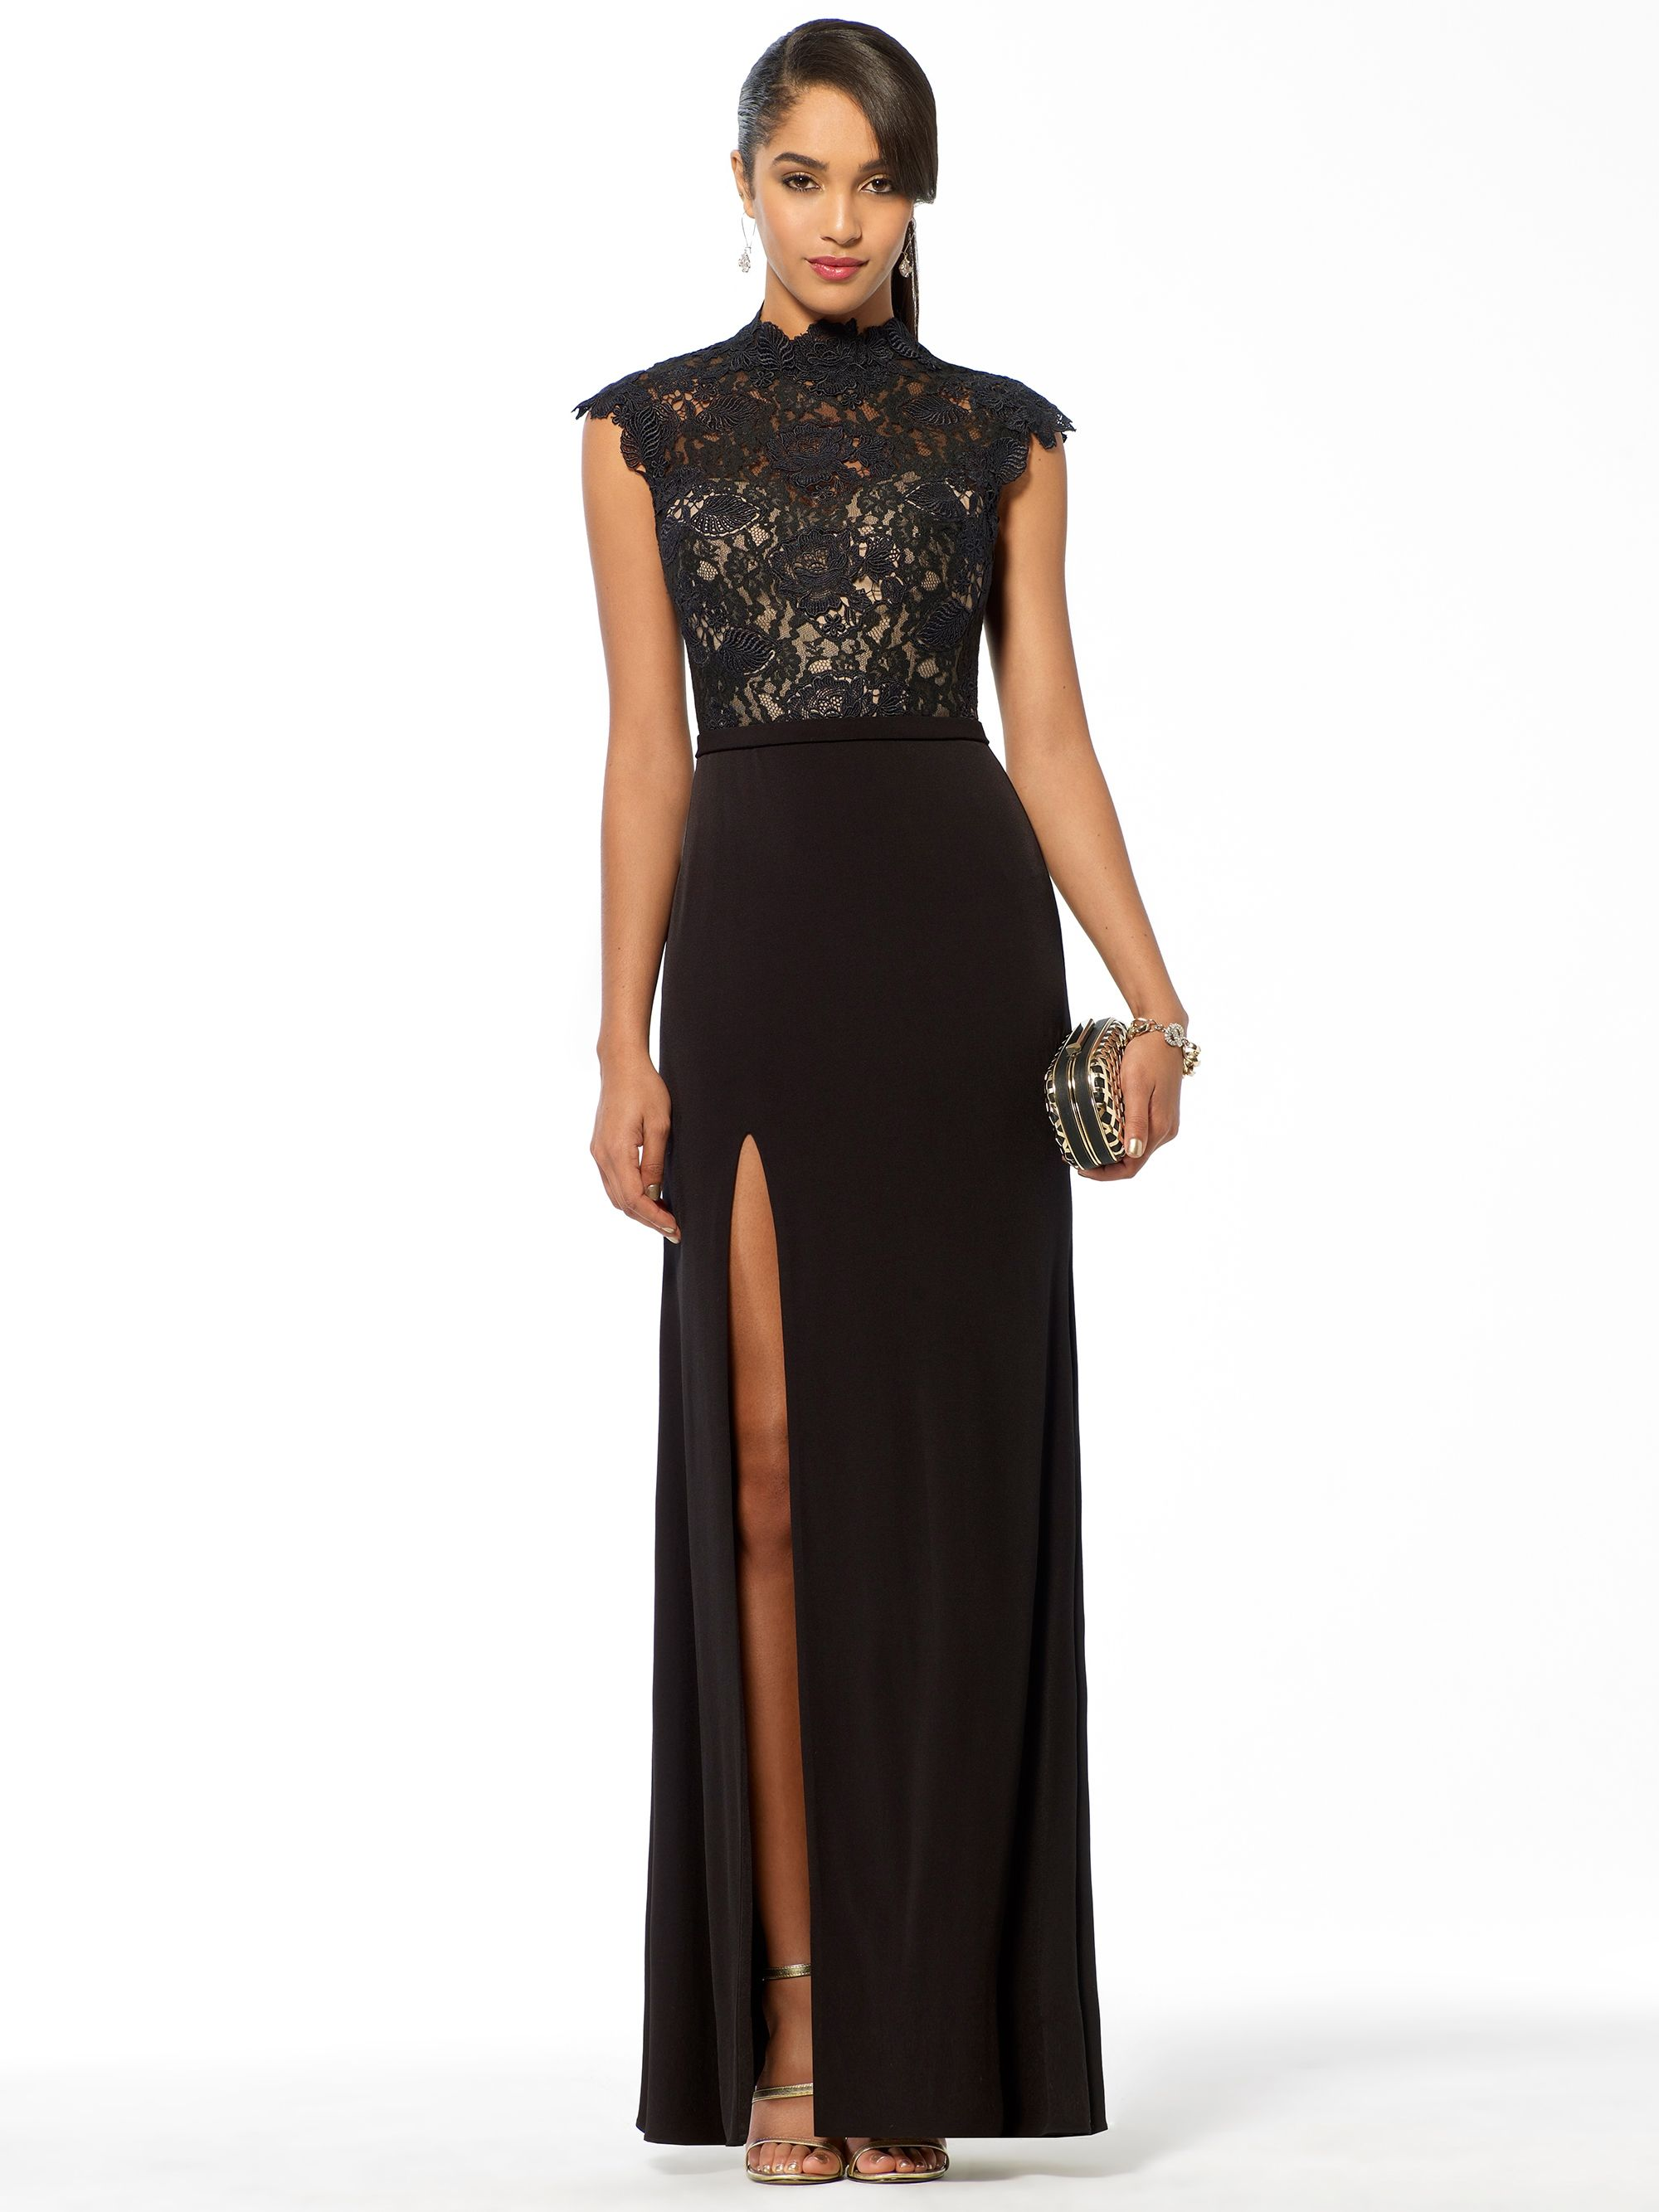 This laced black dress is ideal for any fancy events such as prom or even an all black attire event. The cut on the side adds a more feminine look since the top half covers the chest area fully. I love that about this dress!